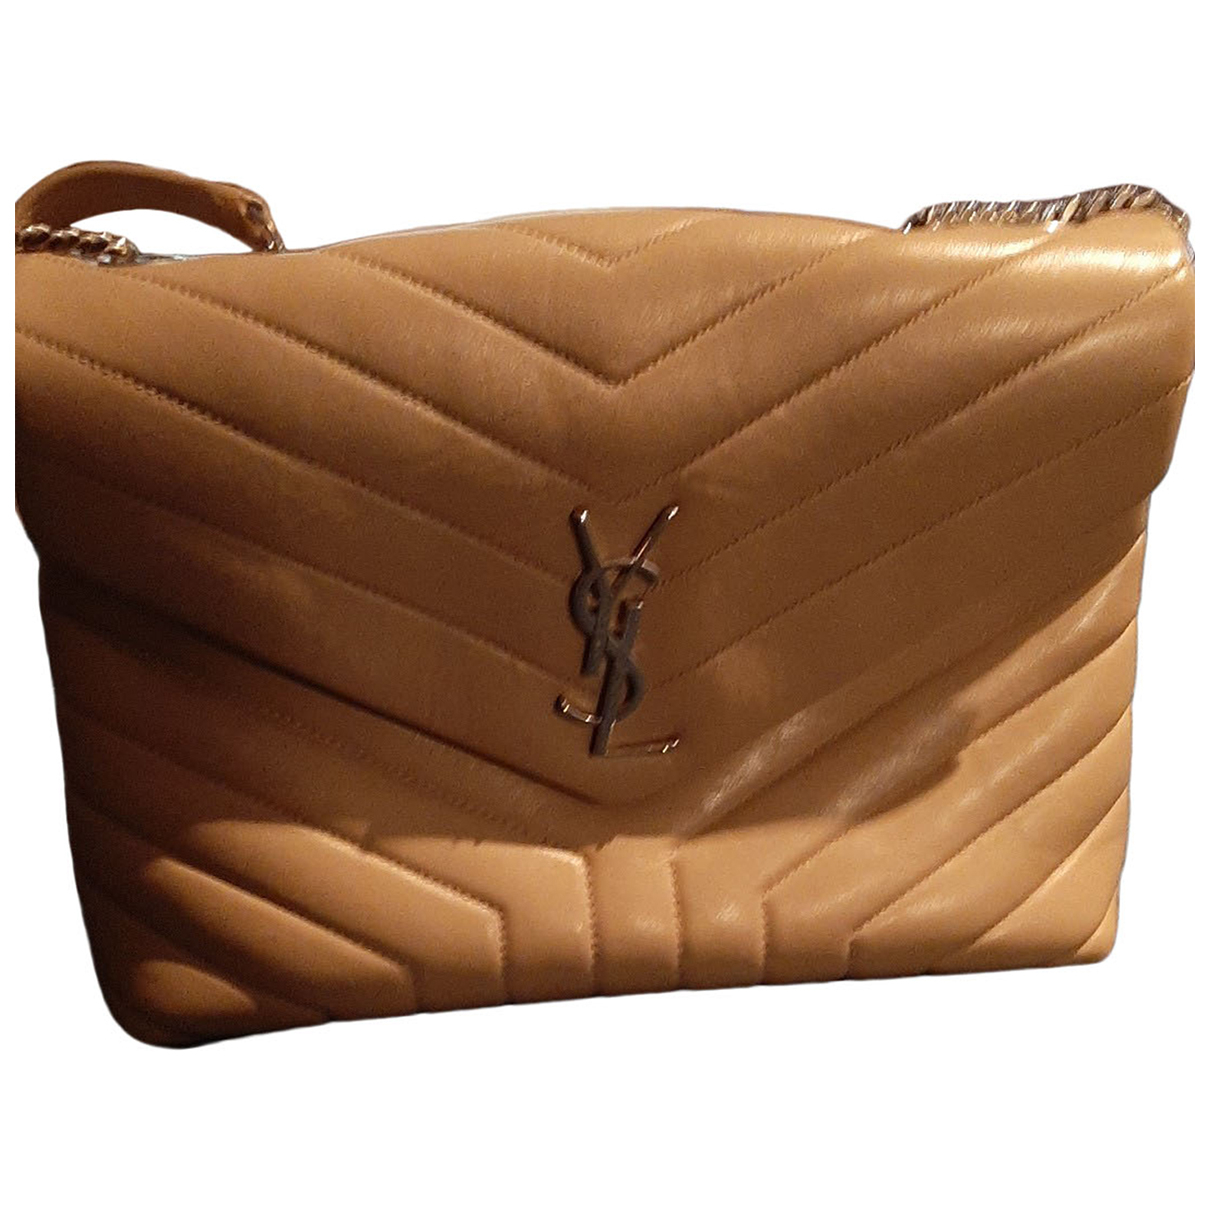 Yves Saint Laurent N Beige Leather handbag for Women N